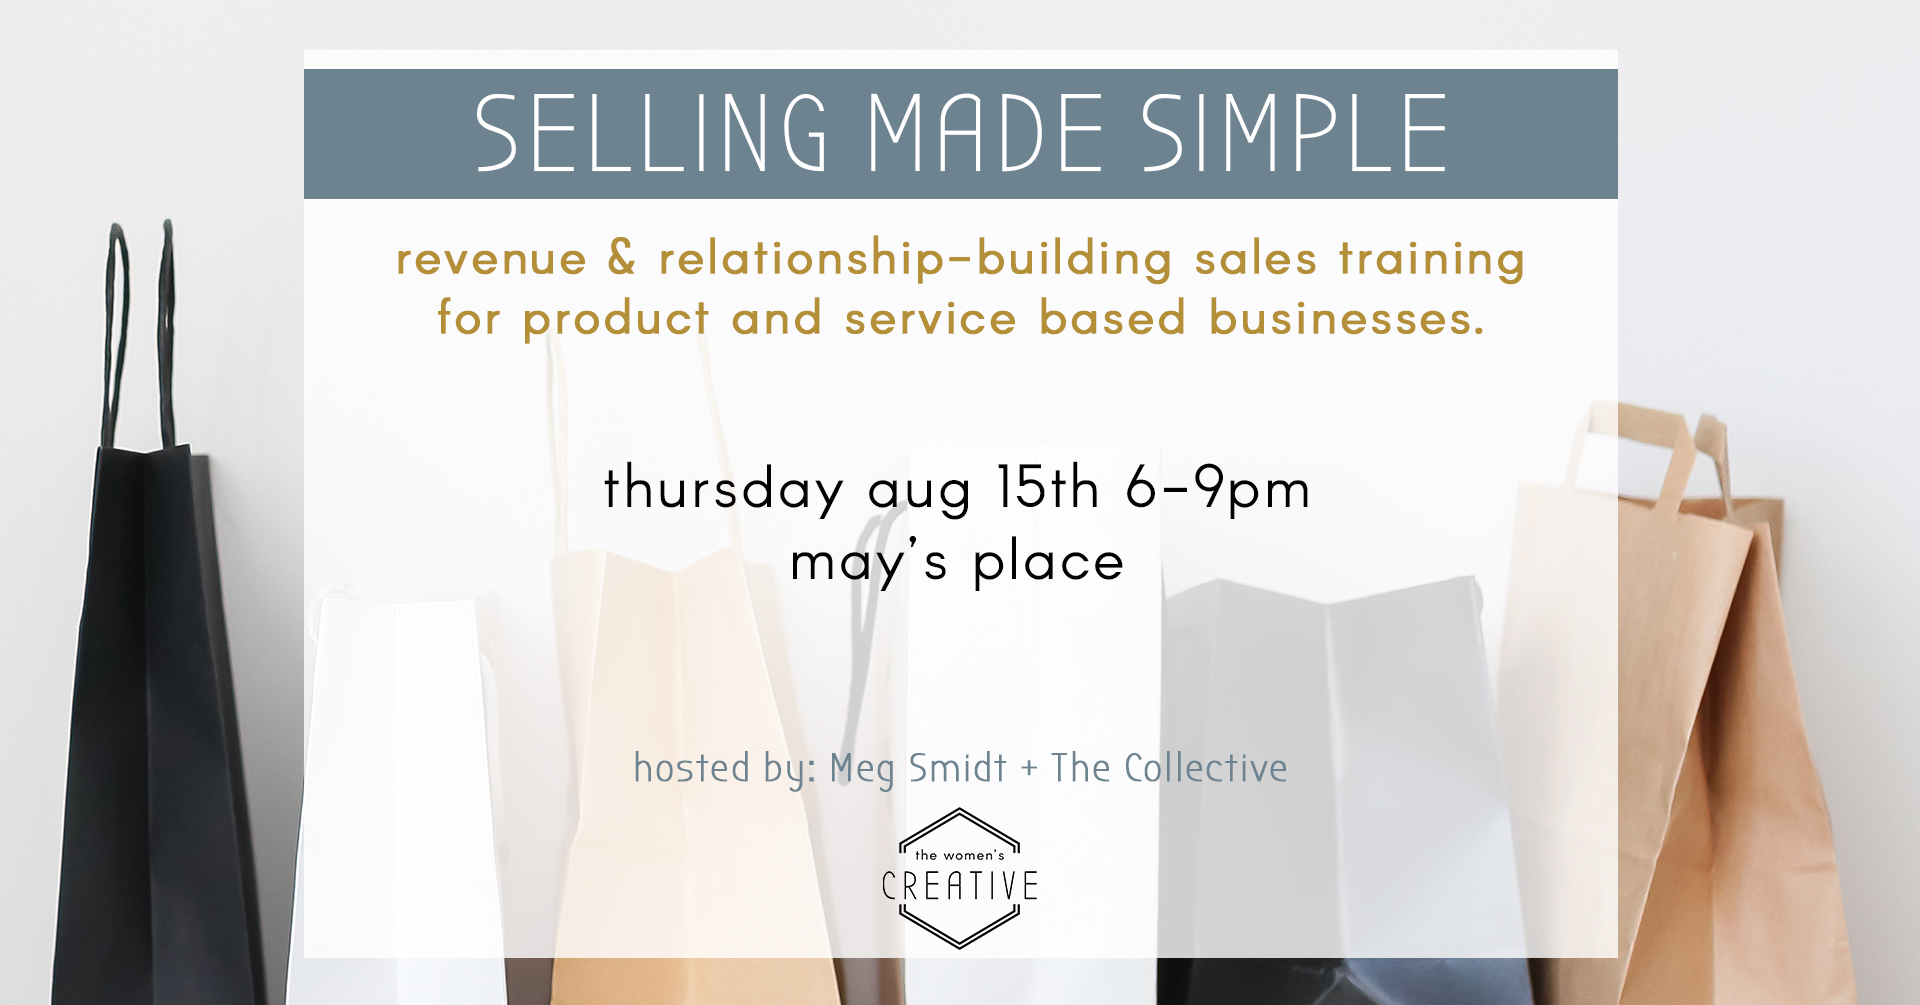 SALES MADE SIMPLE: SALES WORKSHOP ST LOUIS THE WOMEN'S COLLECTIVE